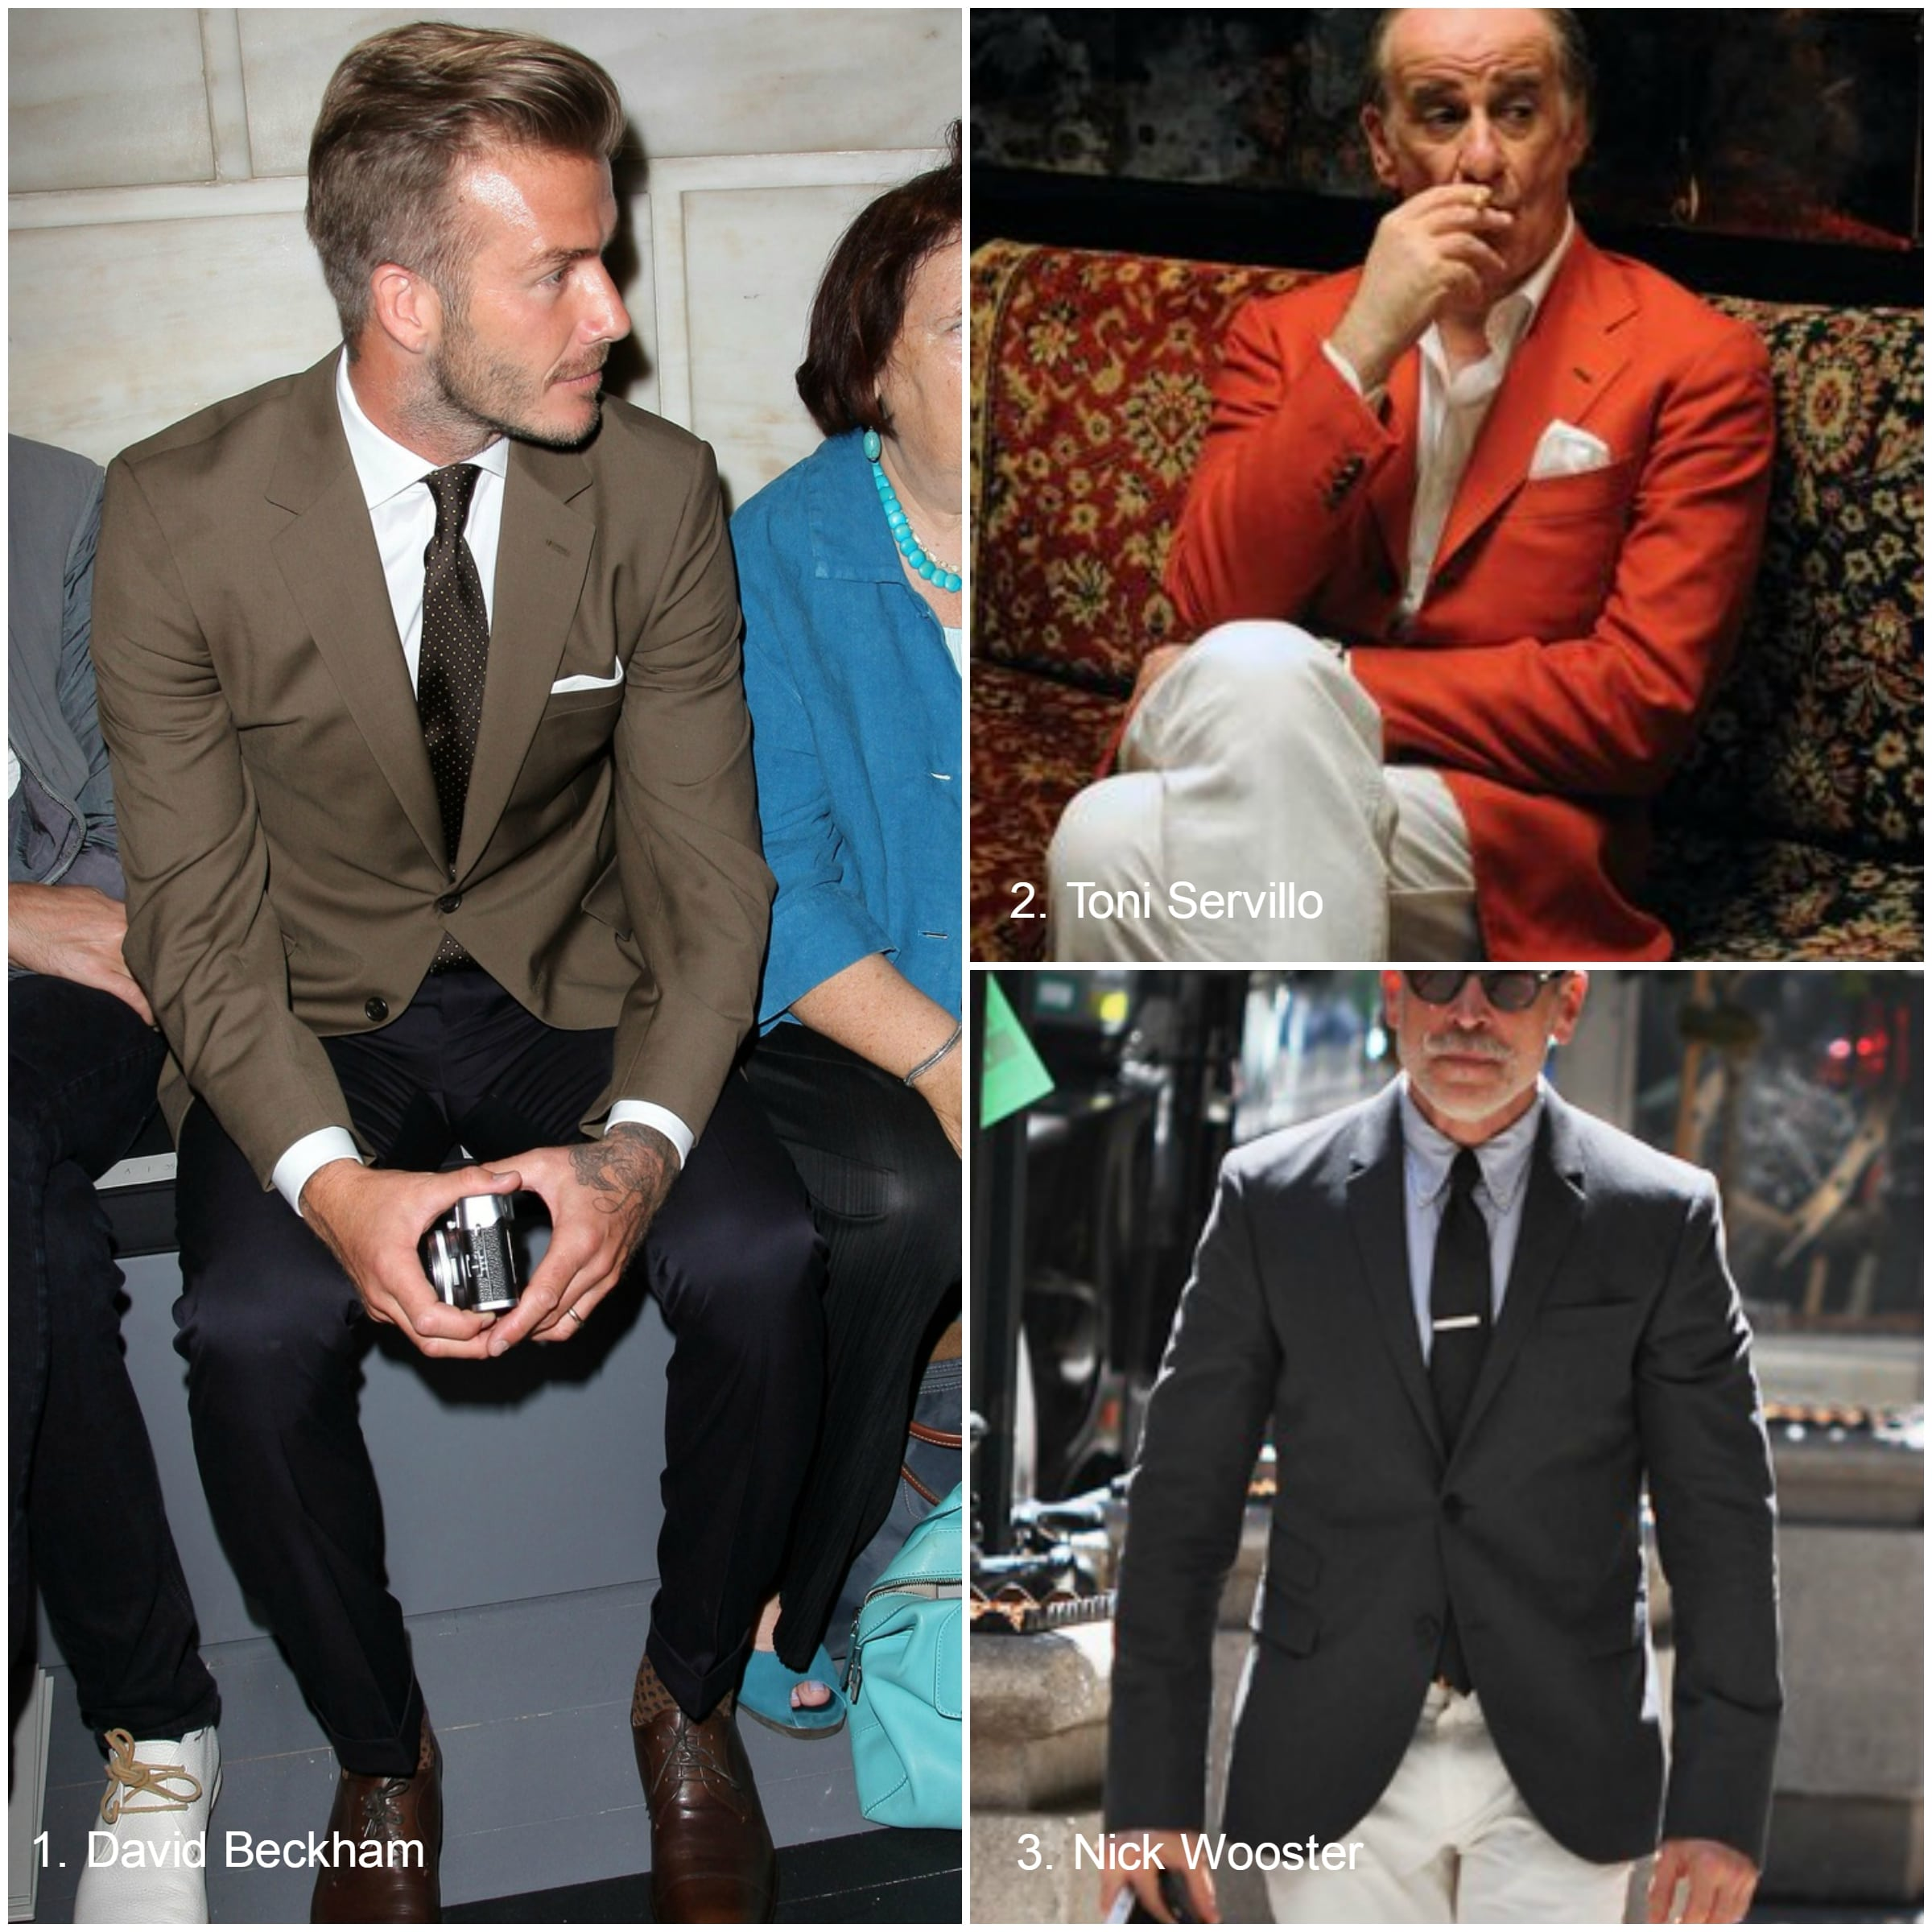 Broken suit: how to mix separates and color combinations ...